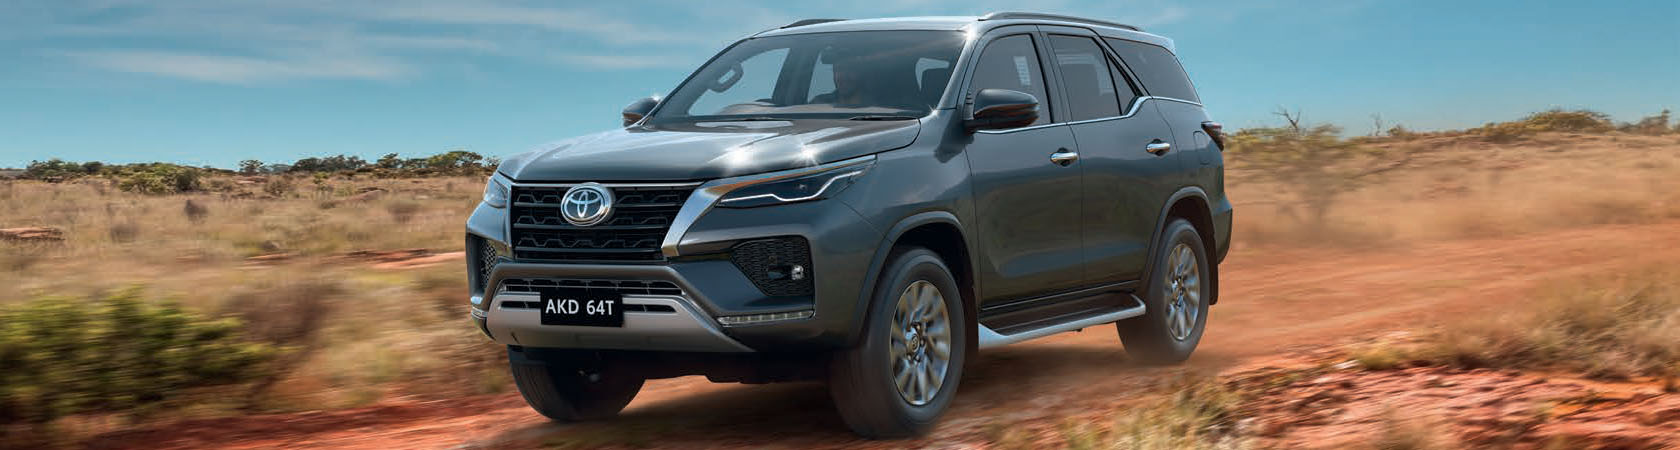 Warrnambool Toyota RAV4